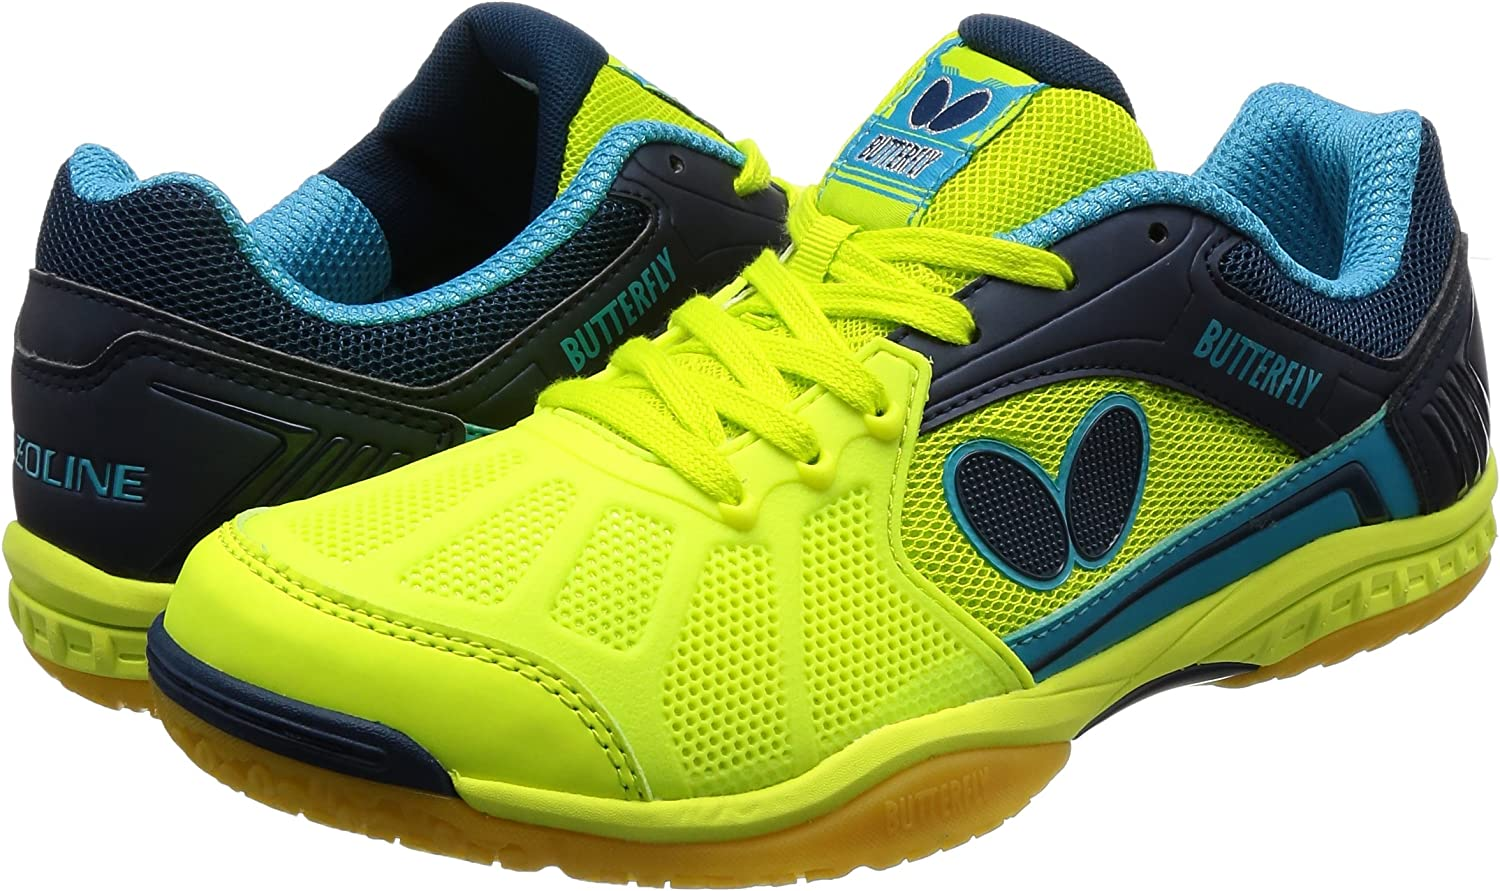 Butterfly Lezoline Rifones Shoes Athletic Support Gripping Ping Pong Shoe Flexibility Table Tennis Shoes for Men or Women Shock Absorbing Cushion